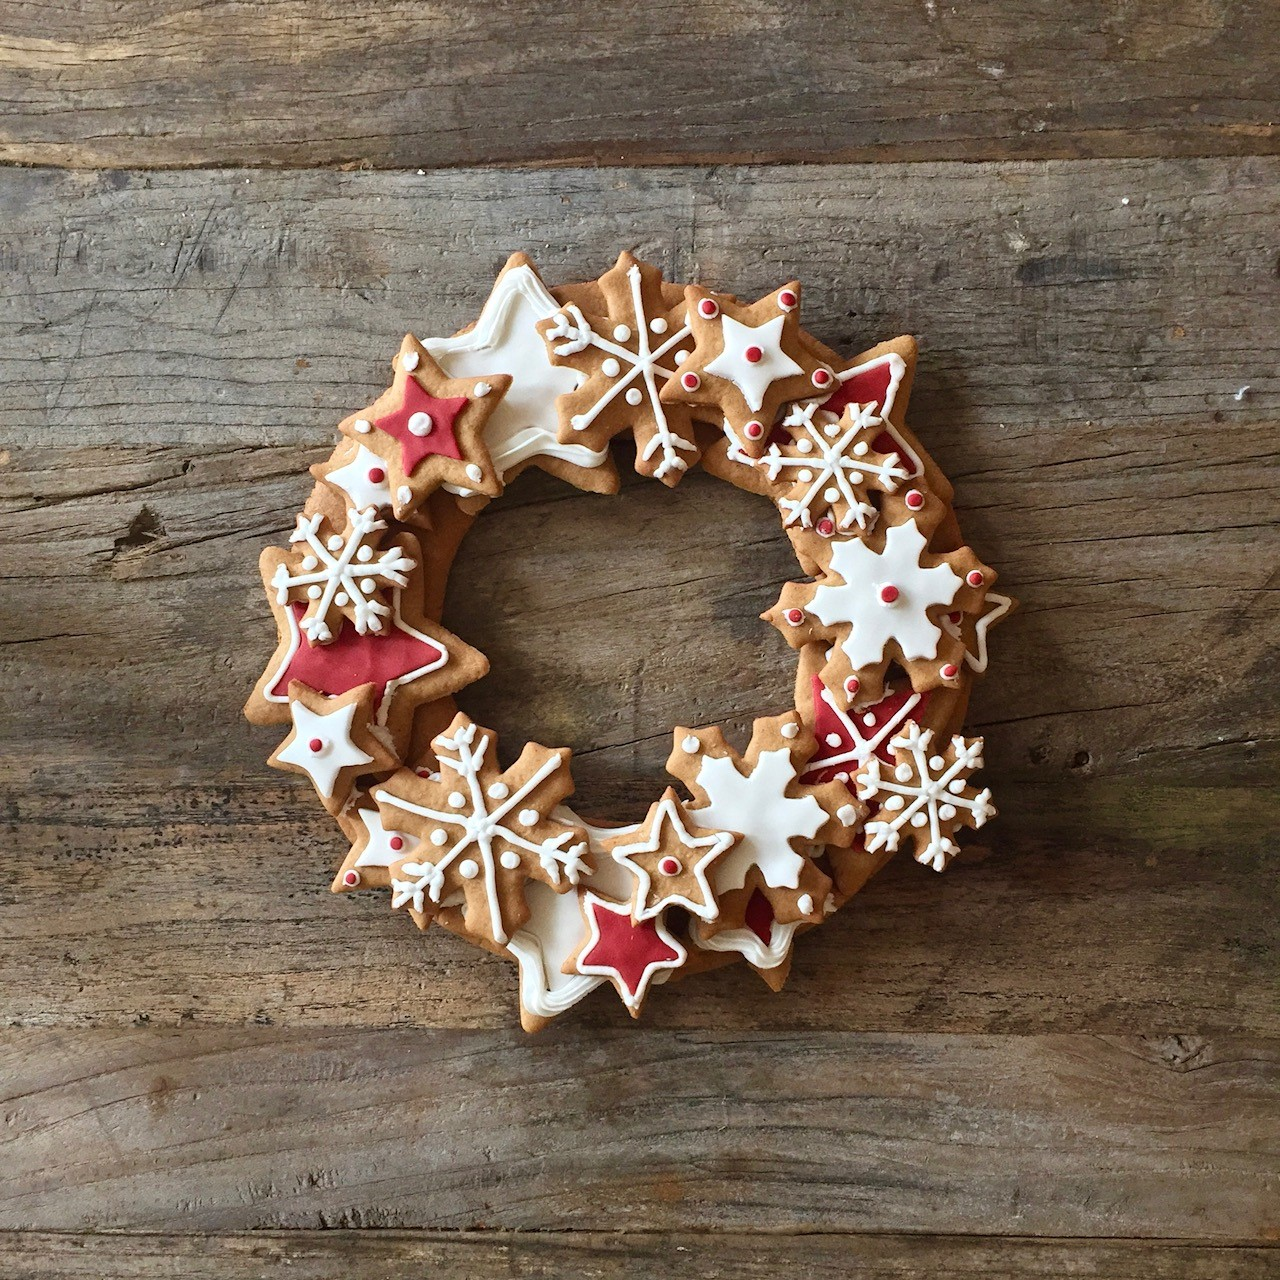 its the perfect centre piece for a table or if you just like gingerbread cookies on their own this recipe is delicious will make around 30 individual - Gingerbread Christmas Decorations Beautiful To Look